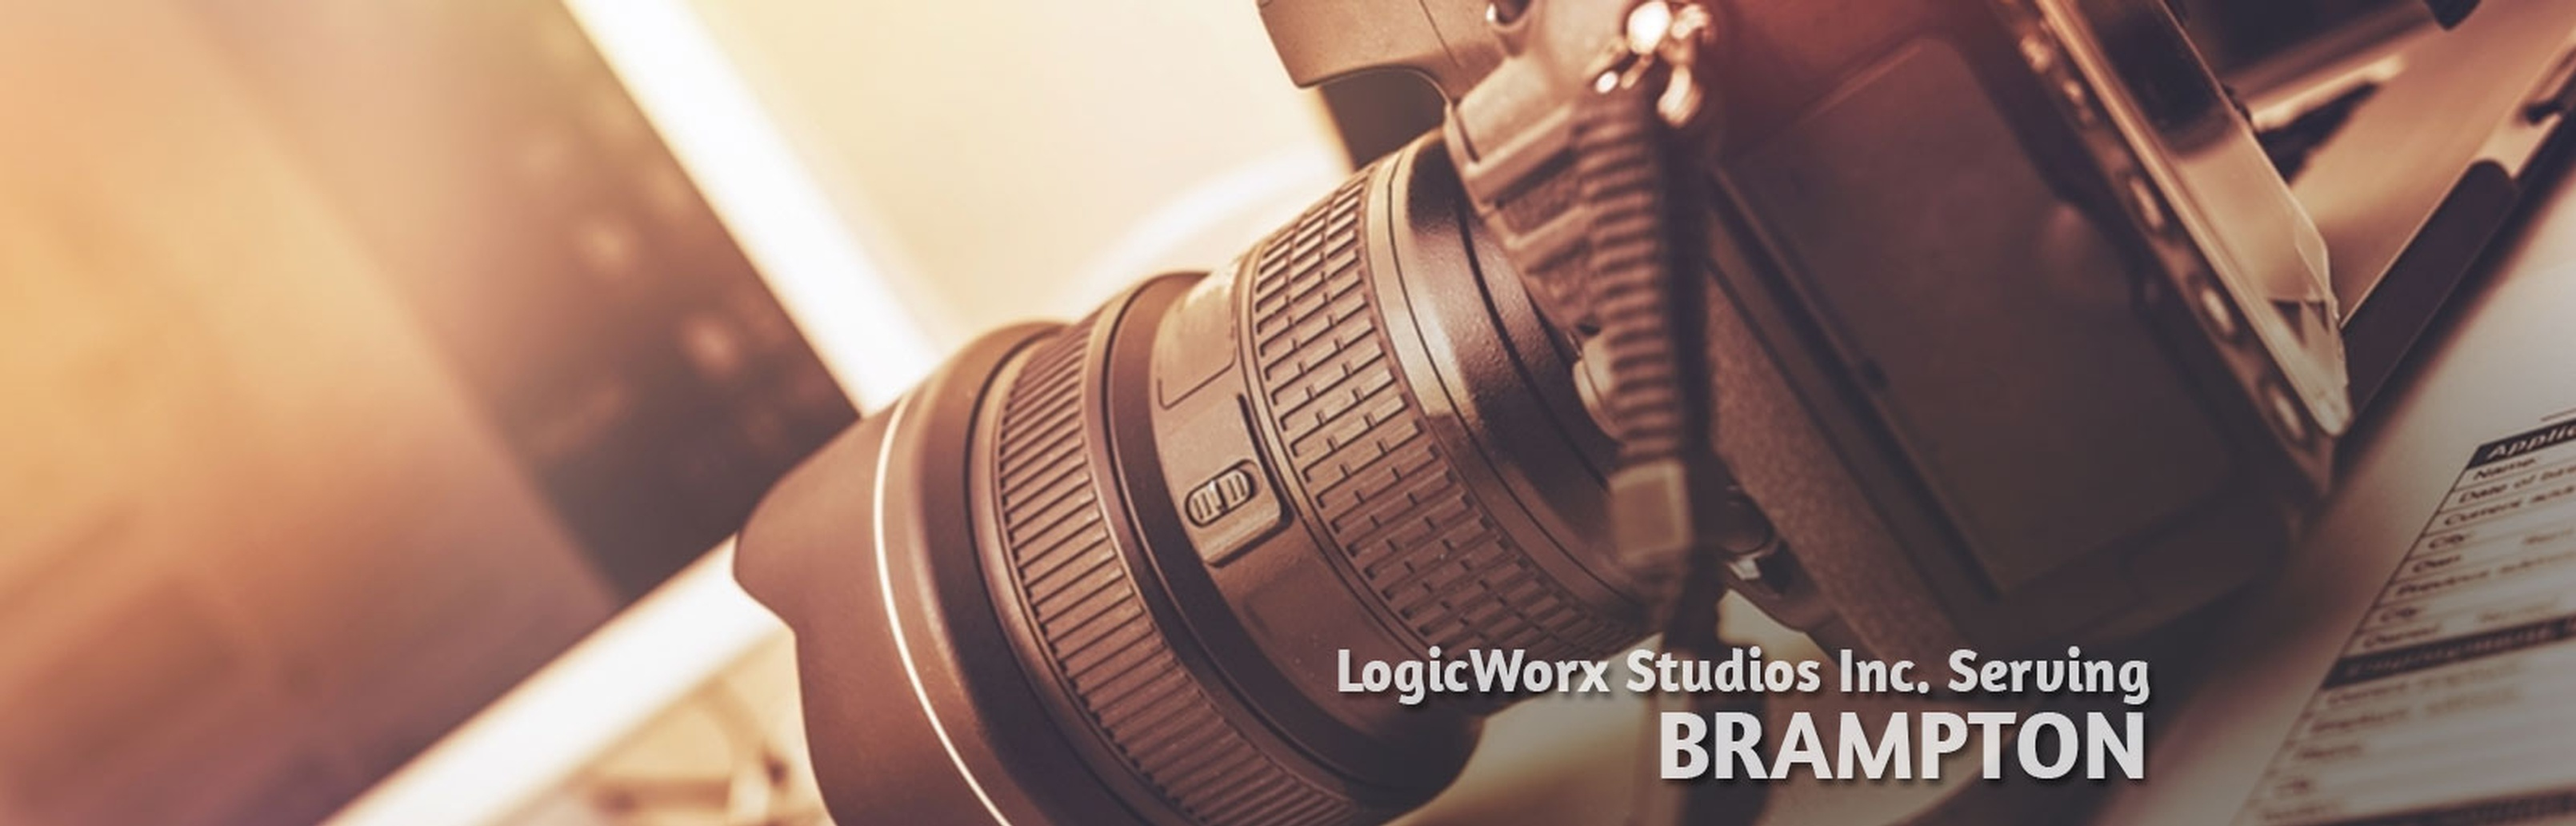 LogicWorx Studios Inc. Serving Brampton